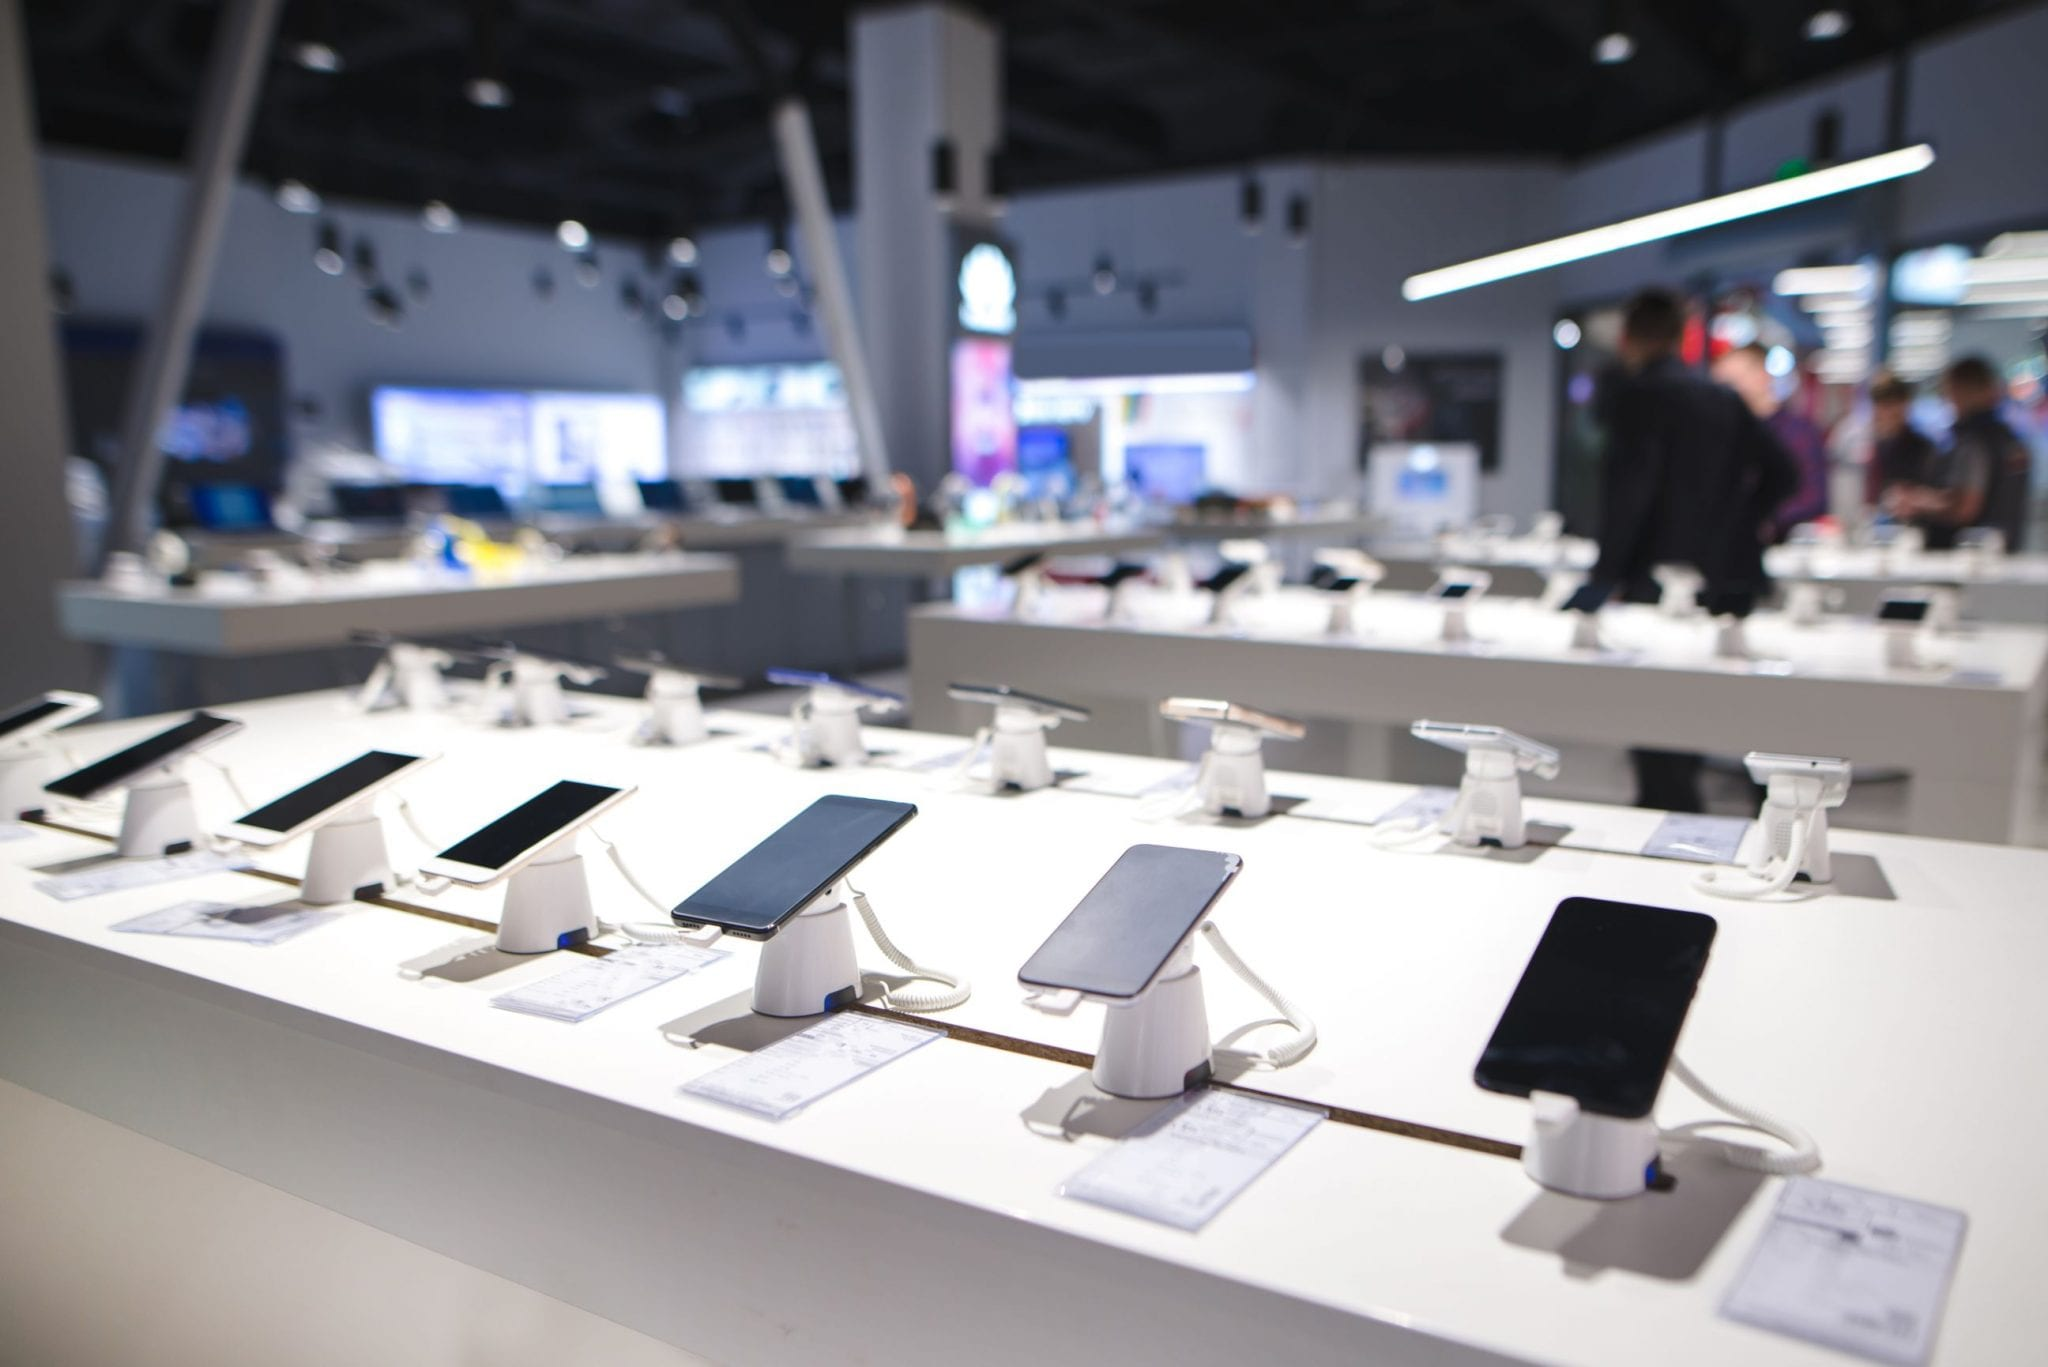 inside phone store